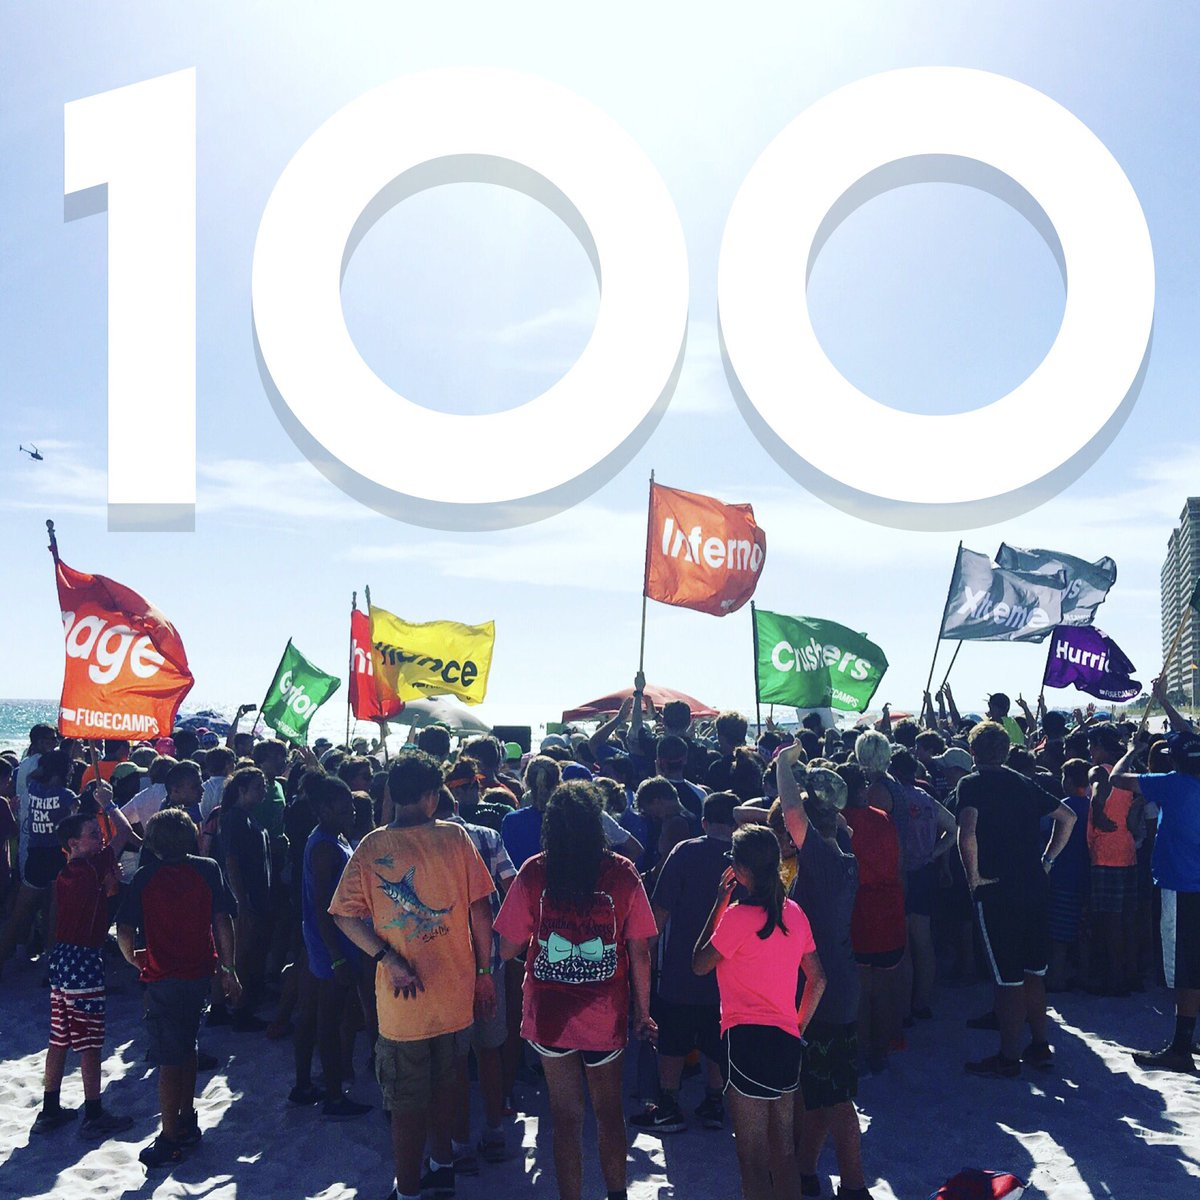 test Twitter Media - HAPPY 100 DAYS UNTIL THE FIRST DAY OF FUGE 2017!!!!! That means tomorrow we are in double digits!! Raise your hand if you're excited! 🎉🎉🎉 https://t.co/m6MISwmWq7